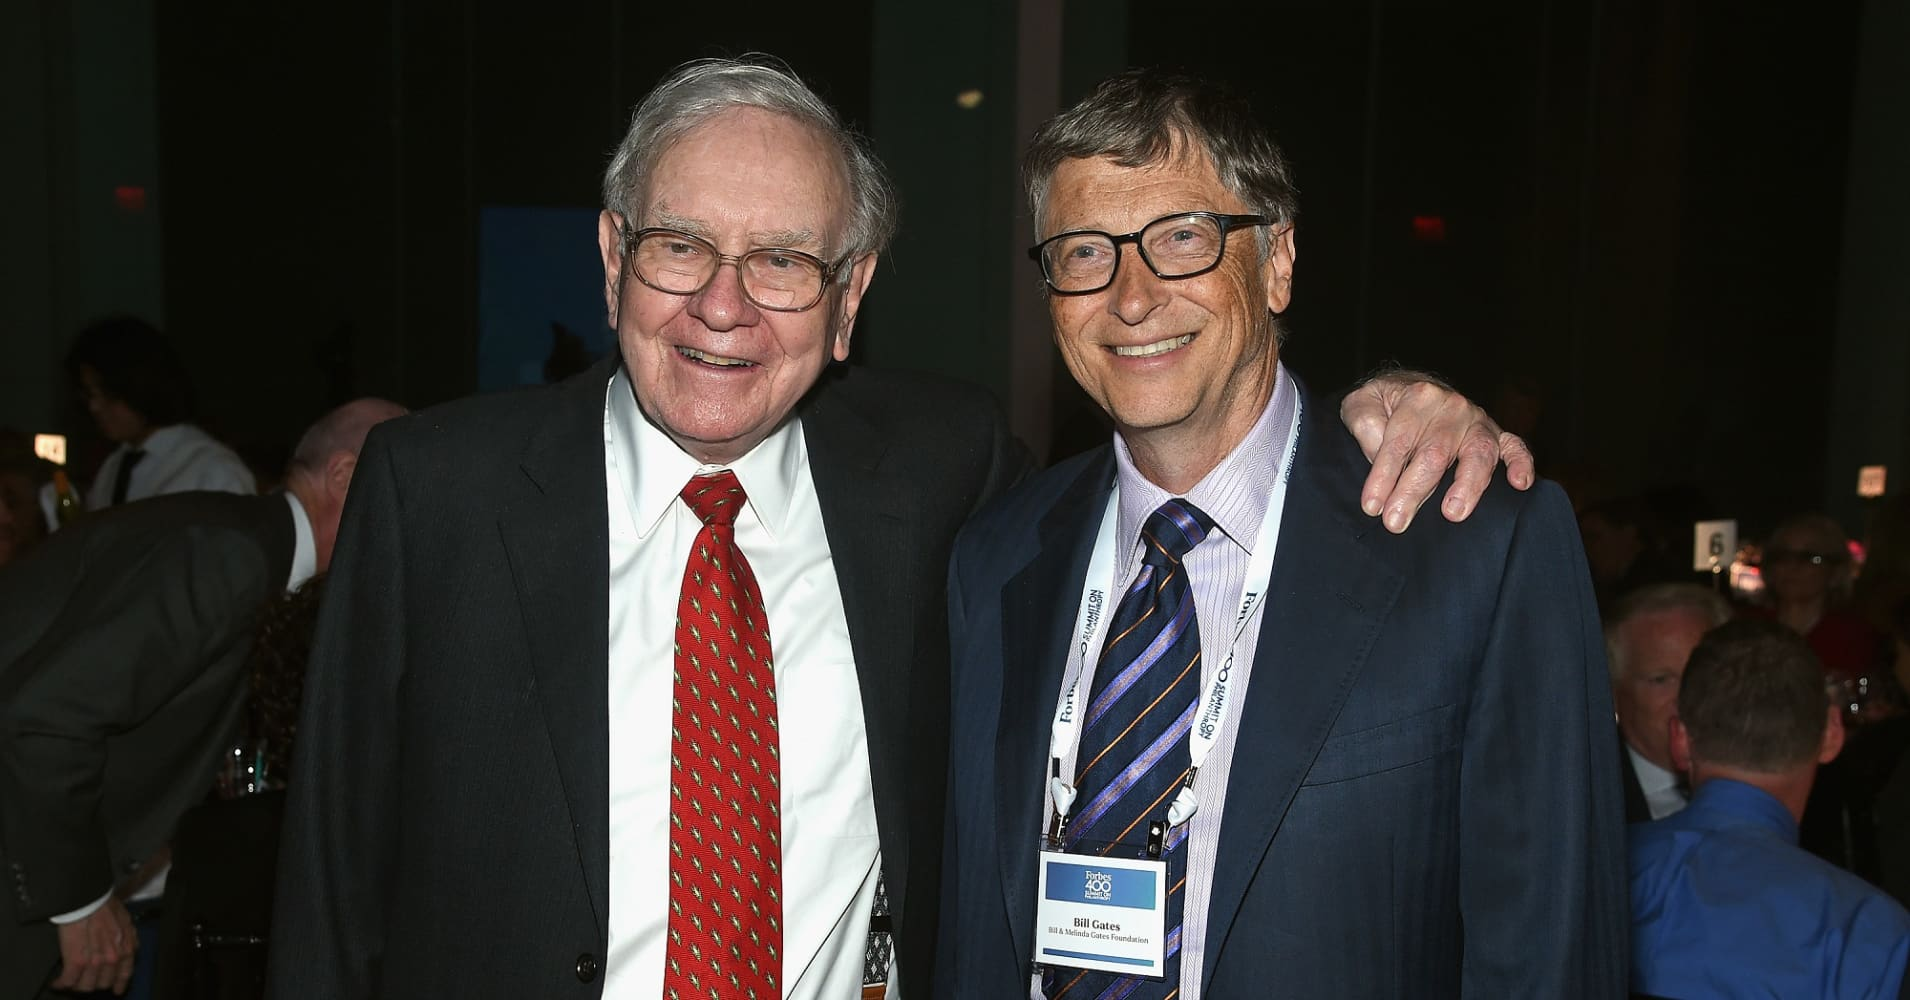 Warren Buffett and Bill Gates attend the Forbes' 2015 Philanthropy Summit Awards Dinner.